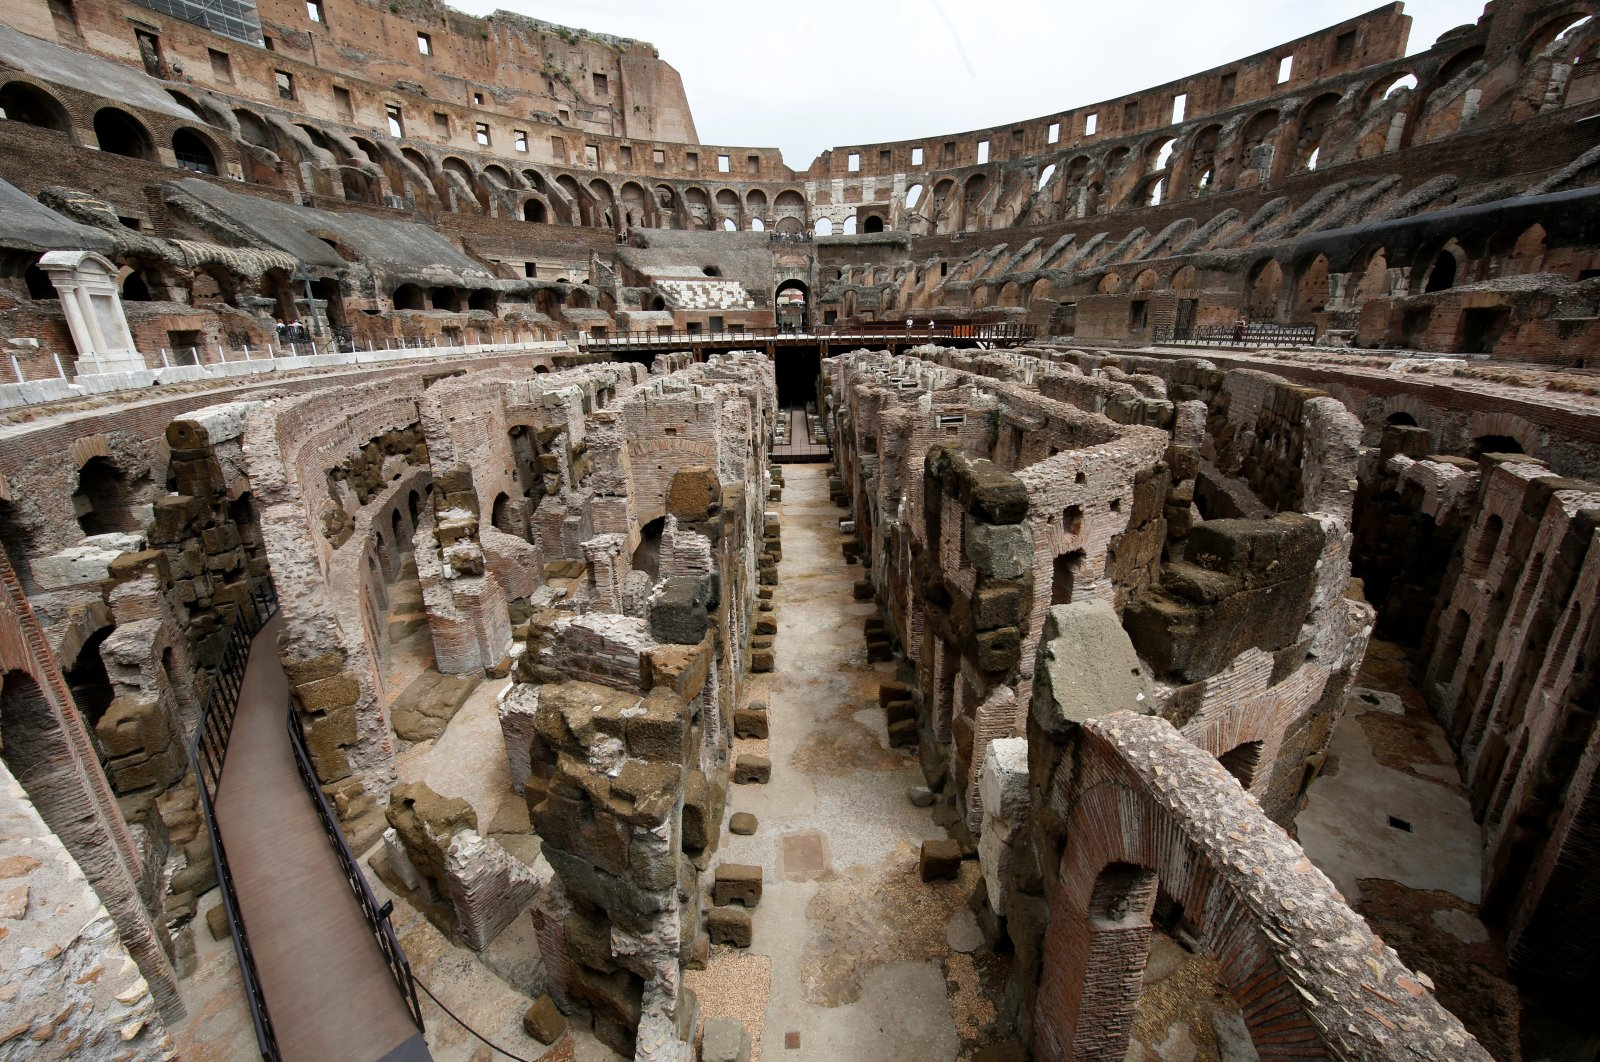 View of the Colosseum tunnels, which have been restored in a multimillion-euro project sponsored by fashion group Tod's in Rome, Italy, June 24, 2021. (REUTERS Photo)